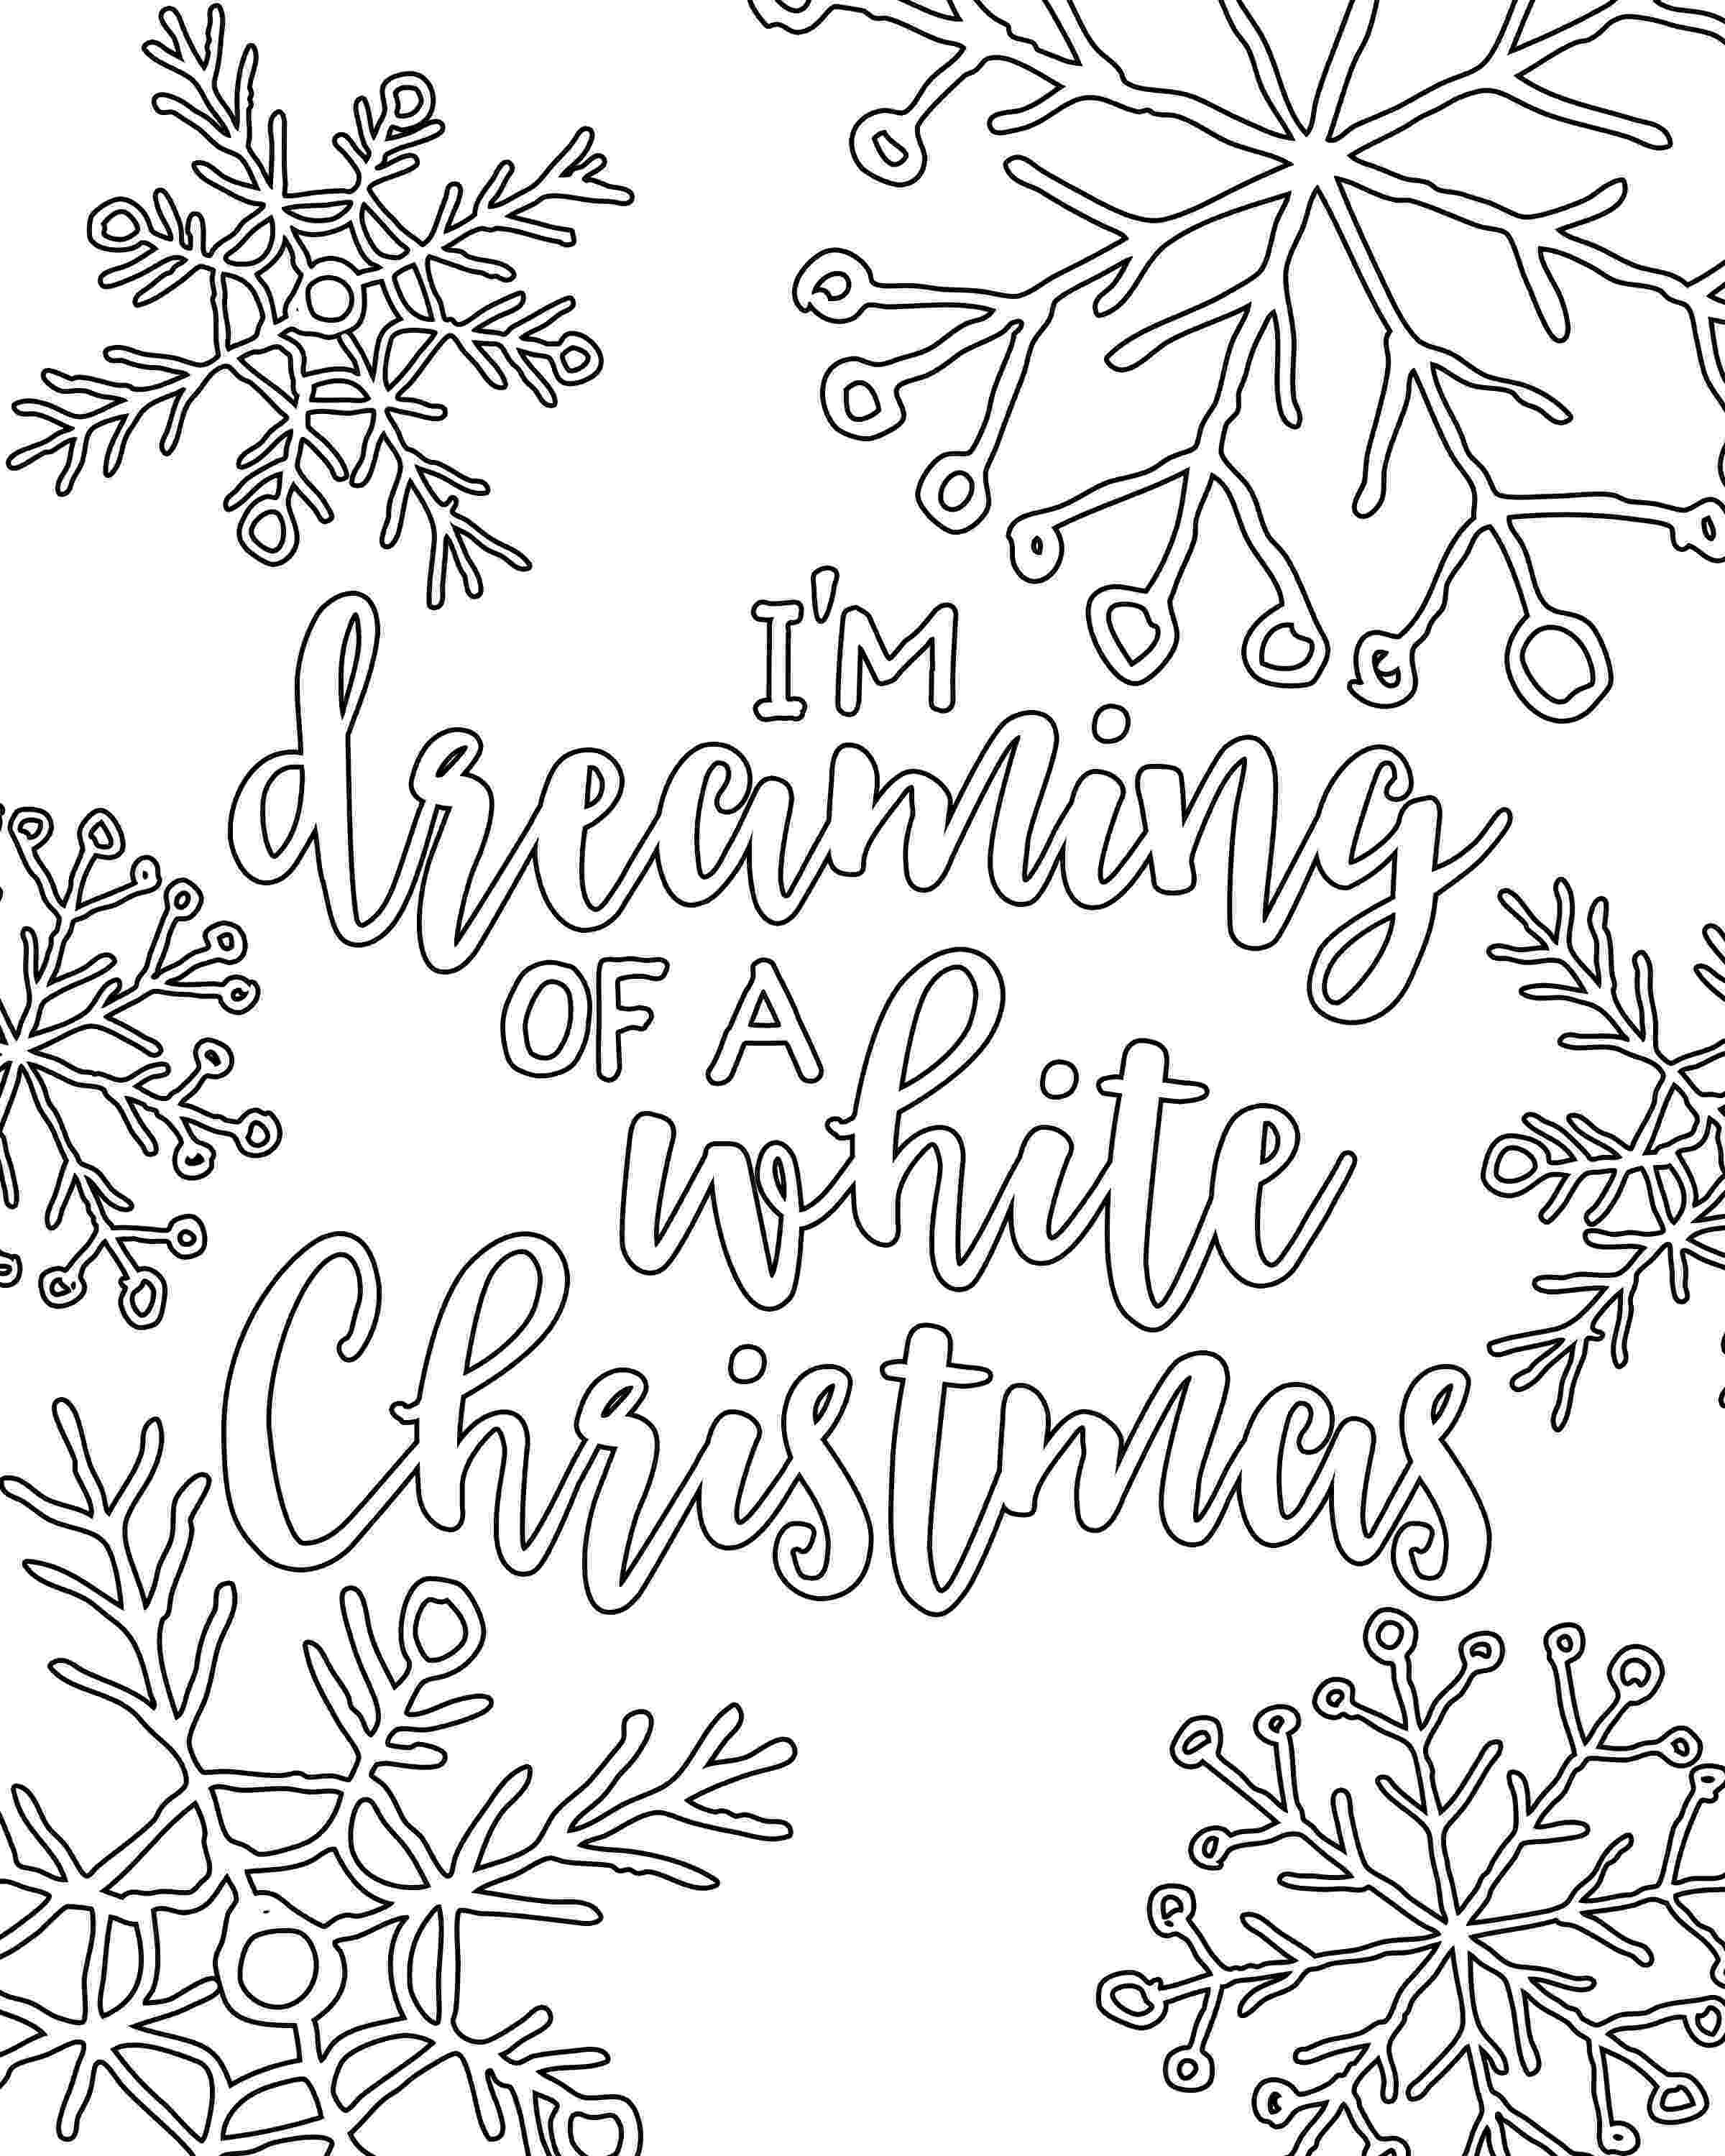 christmas colouring pages for adults printable merry christmas coloring pages for adults printable printable colouring pages christmas for adults